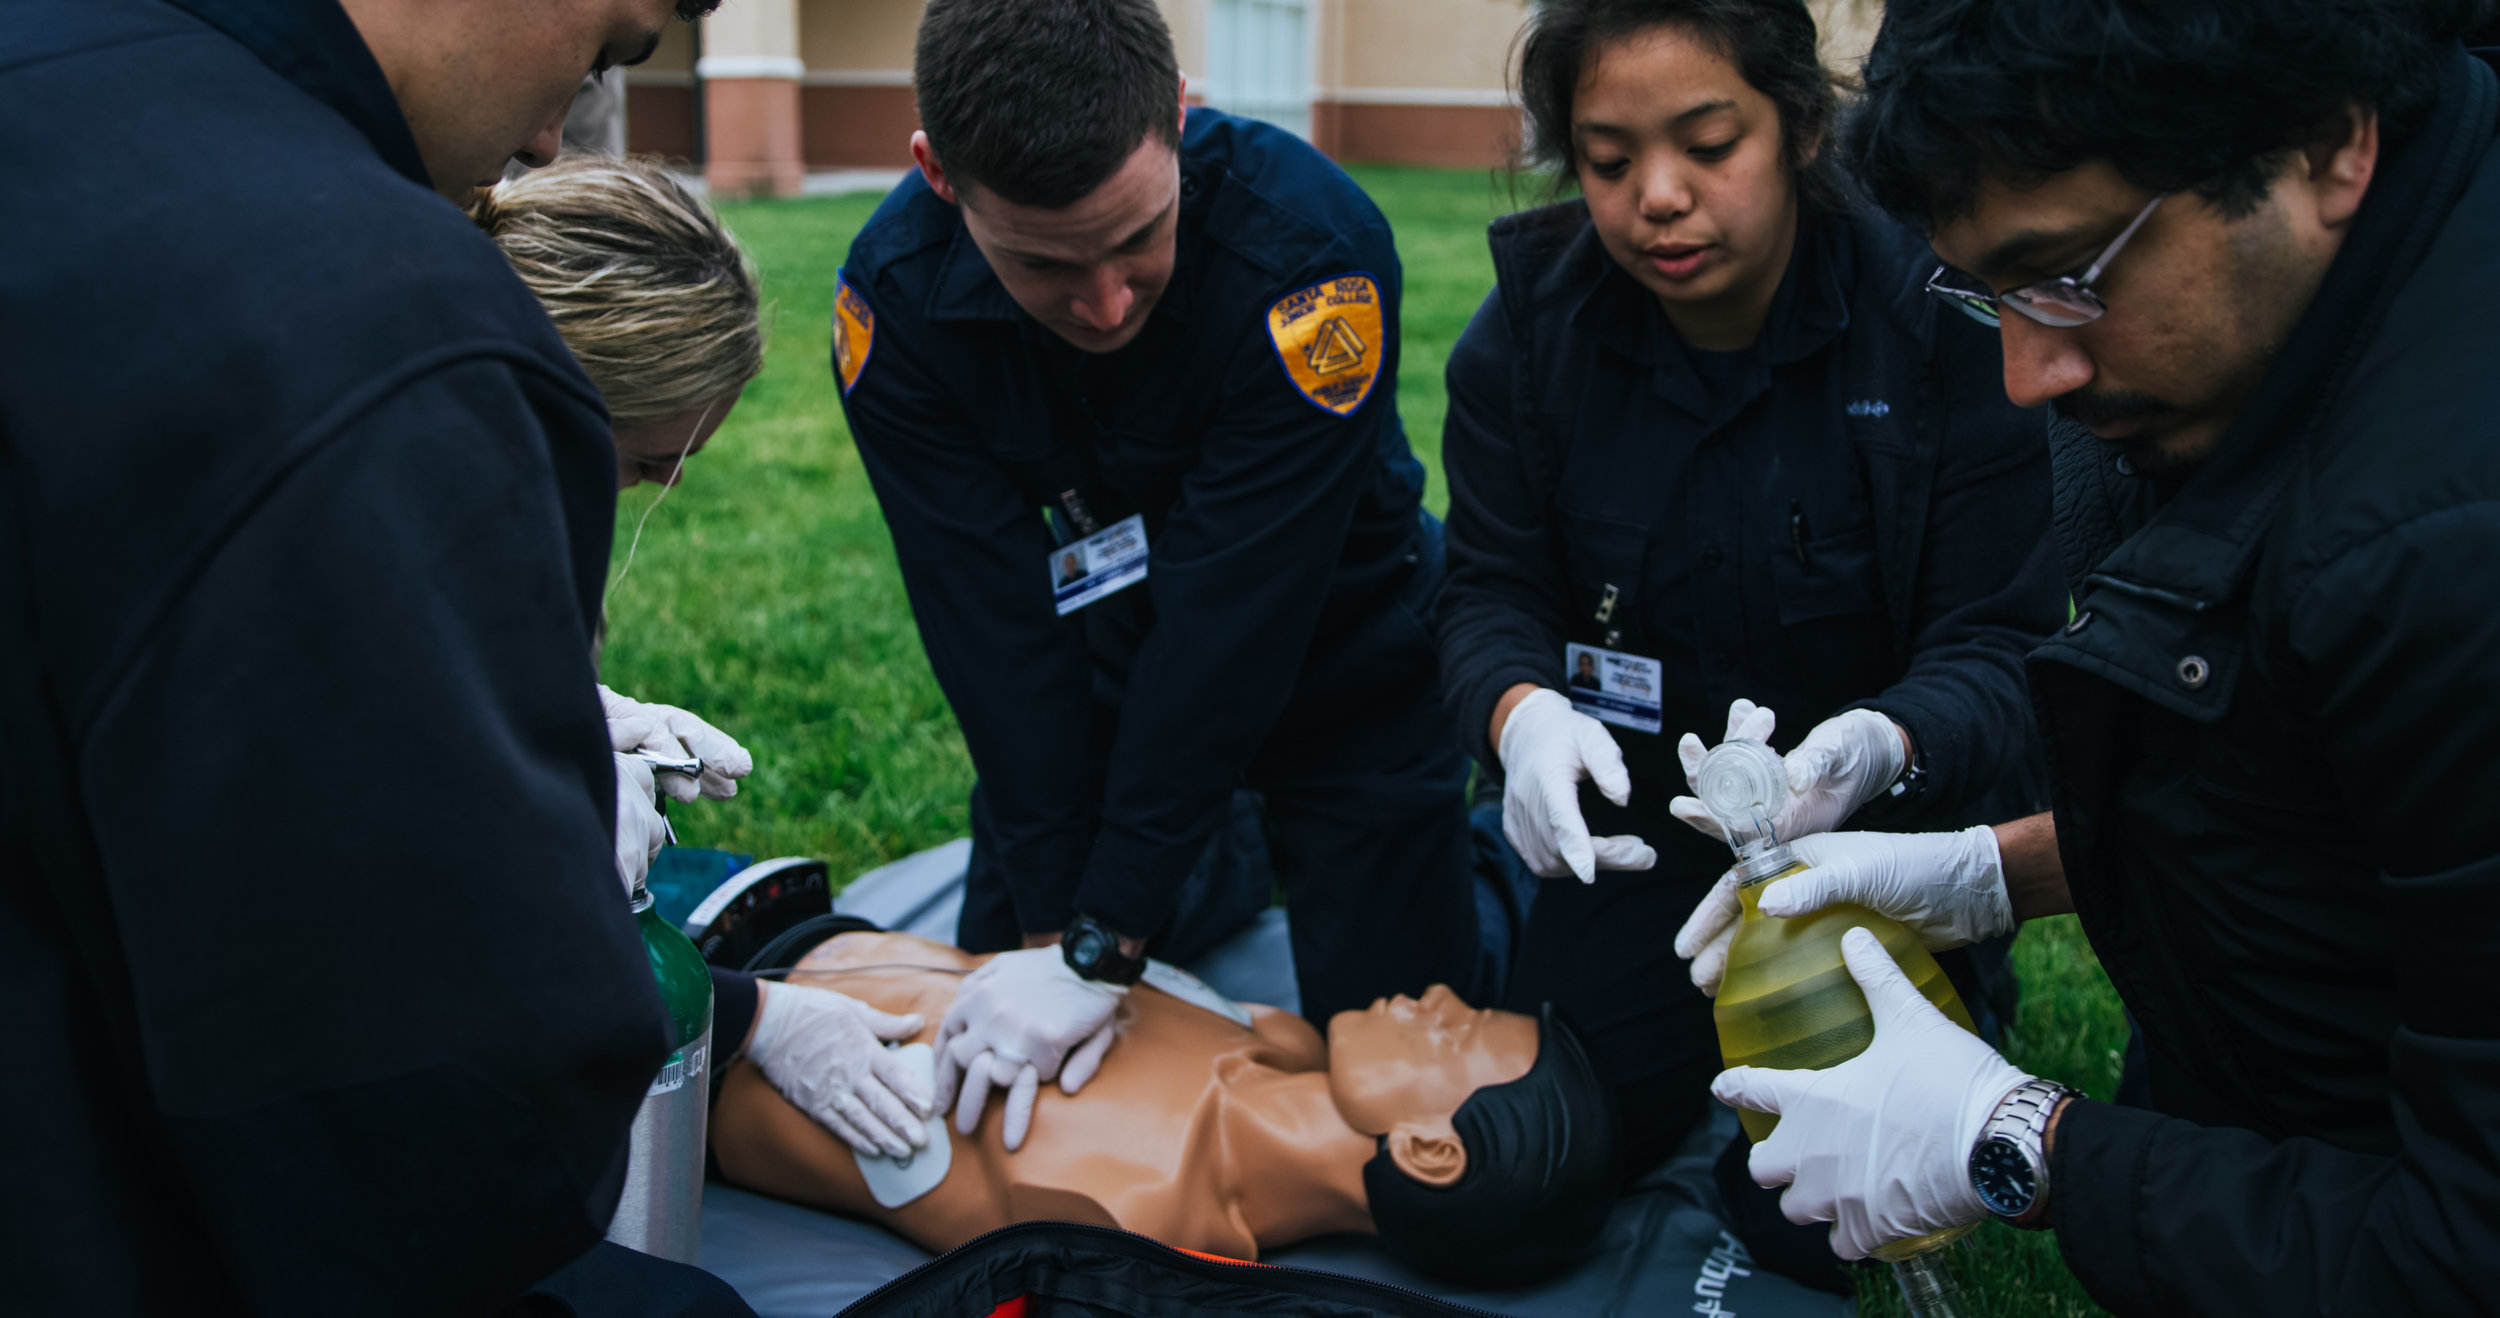 Emergency response students practicing on dummy in field